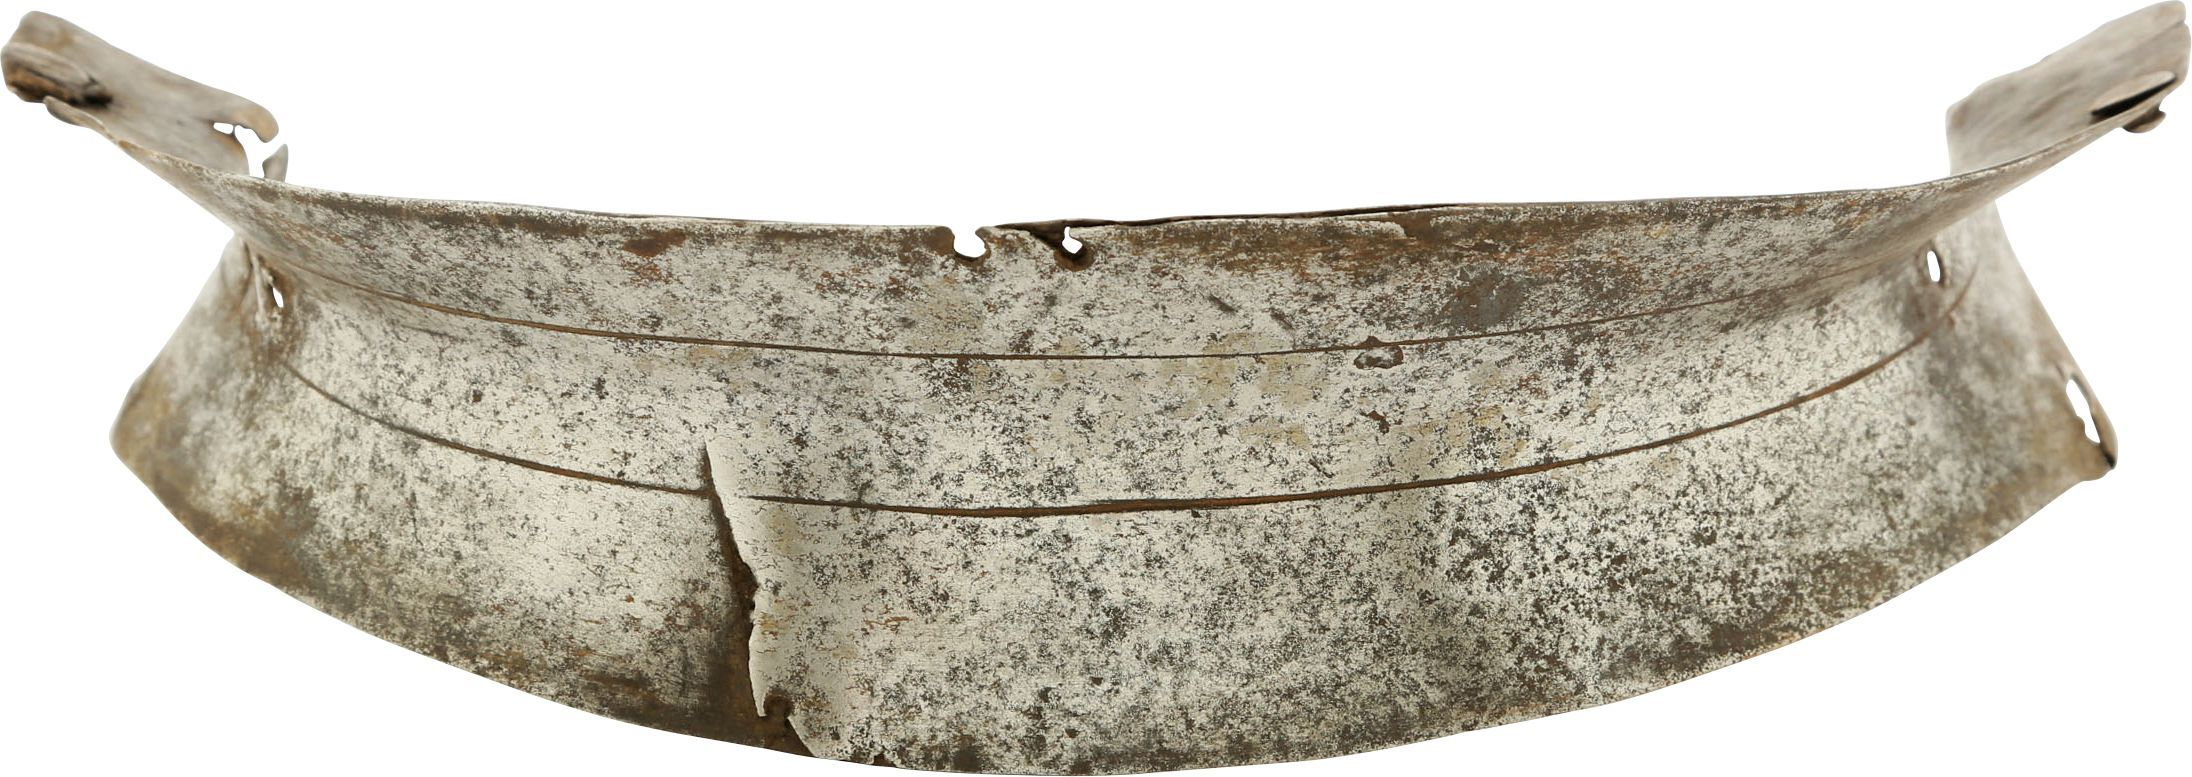 Waist Plate From A German Armor Of About 1520-30 - Product